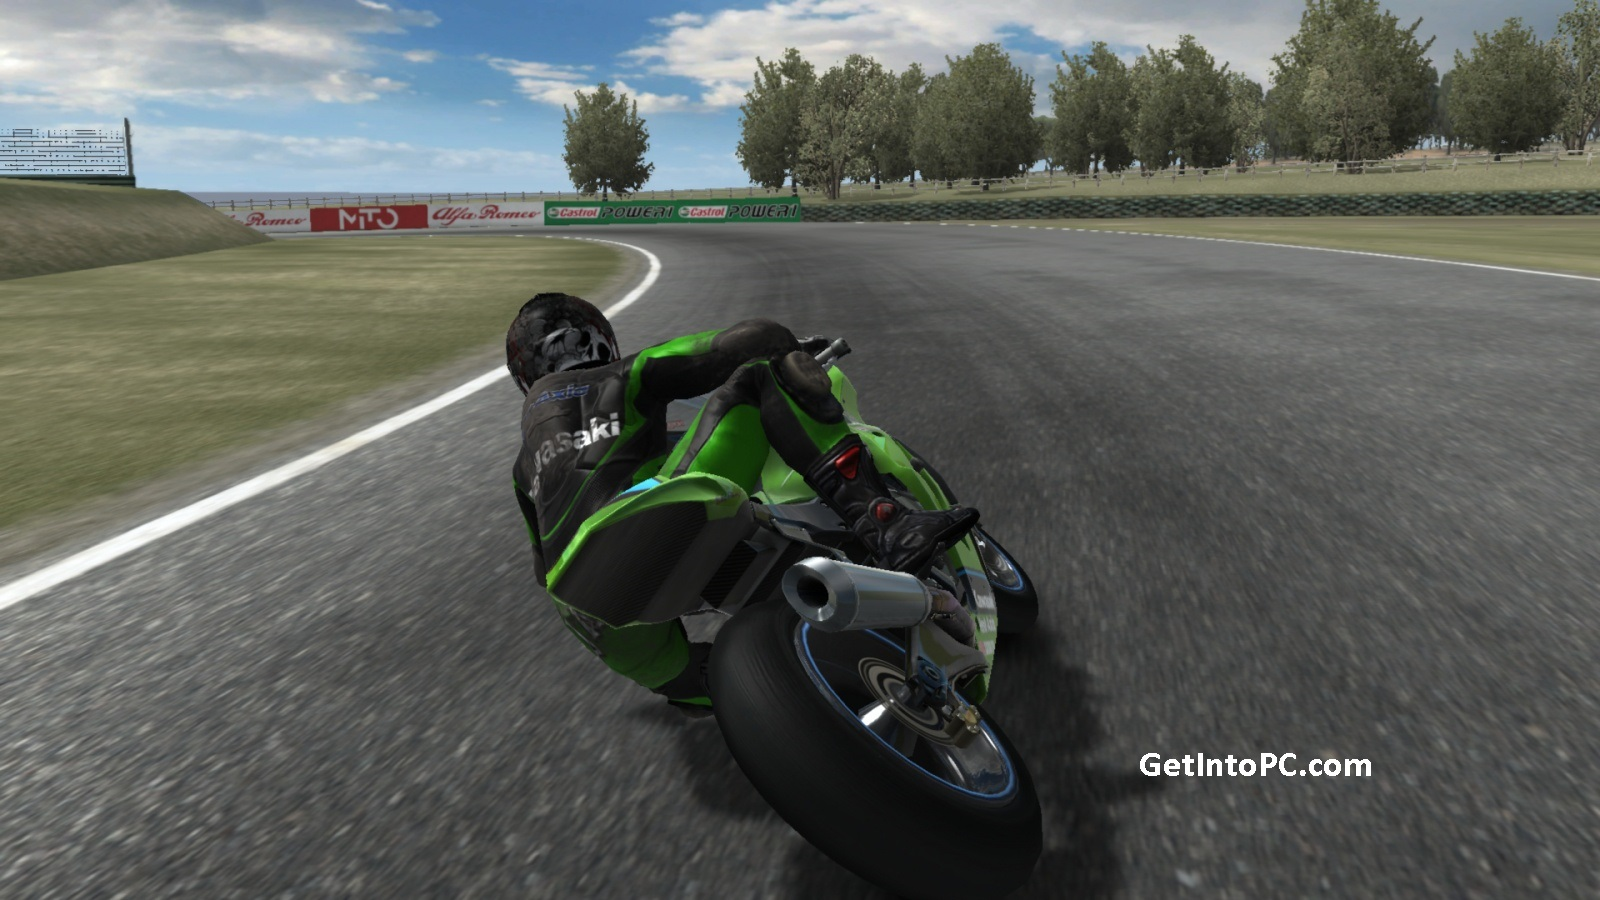 Bike Racing Games For Pc This Bike racing game has